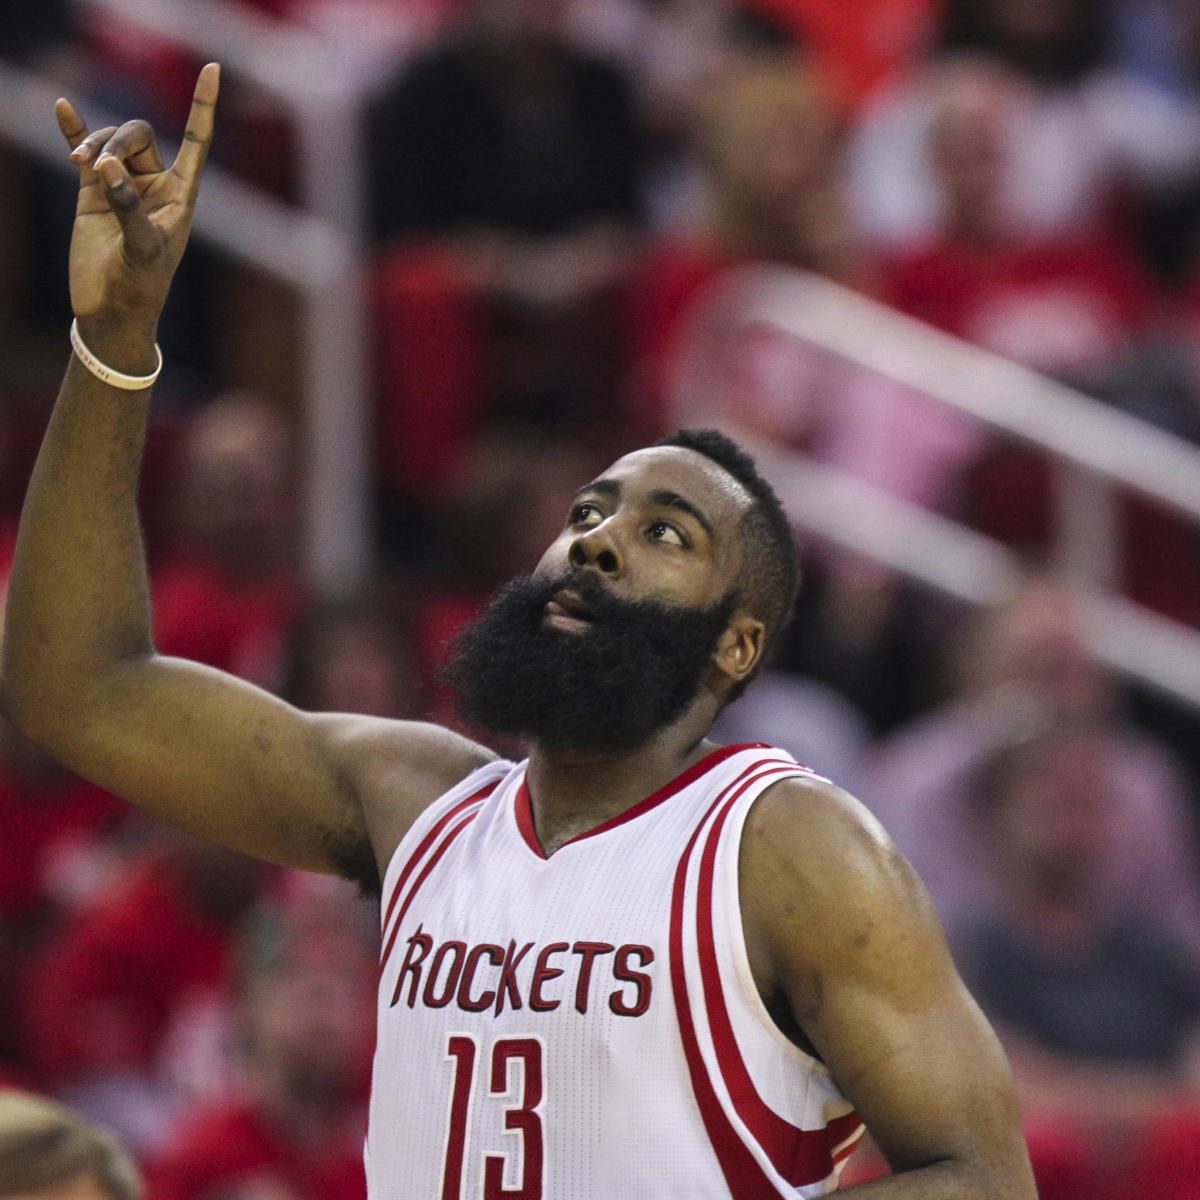 Rockets Vs Warriors Tickets Game 3: Warriors Vs. Rockets: Game 3 Score And Twitter Reaction